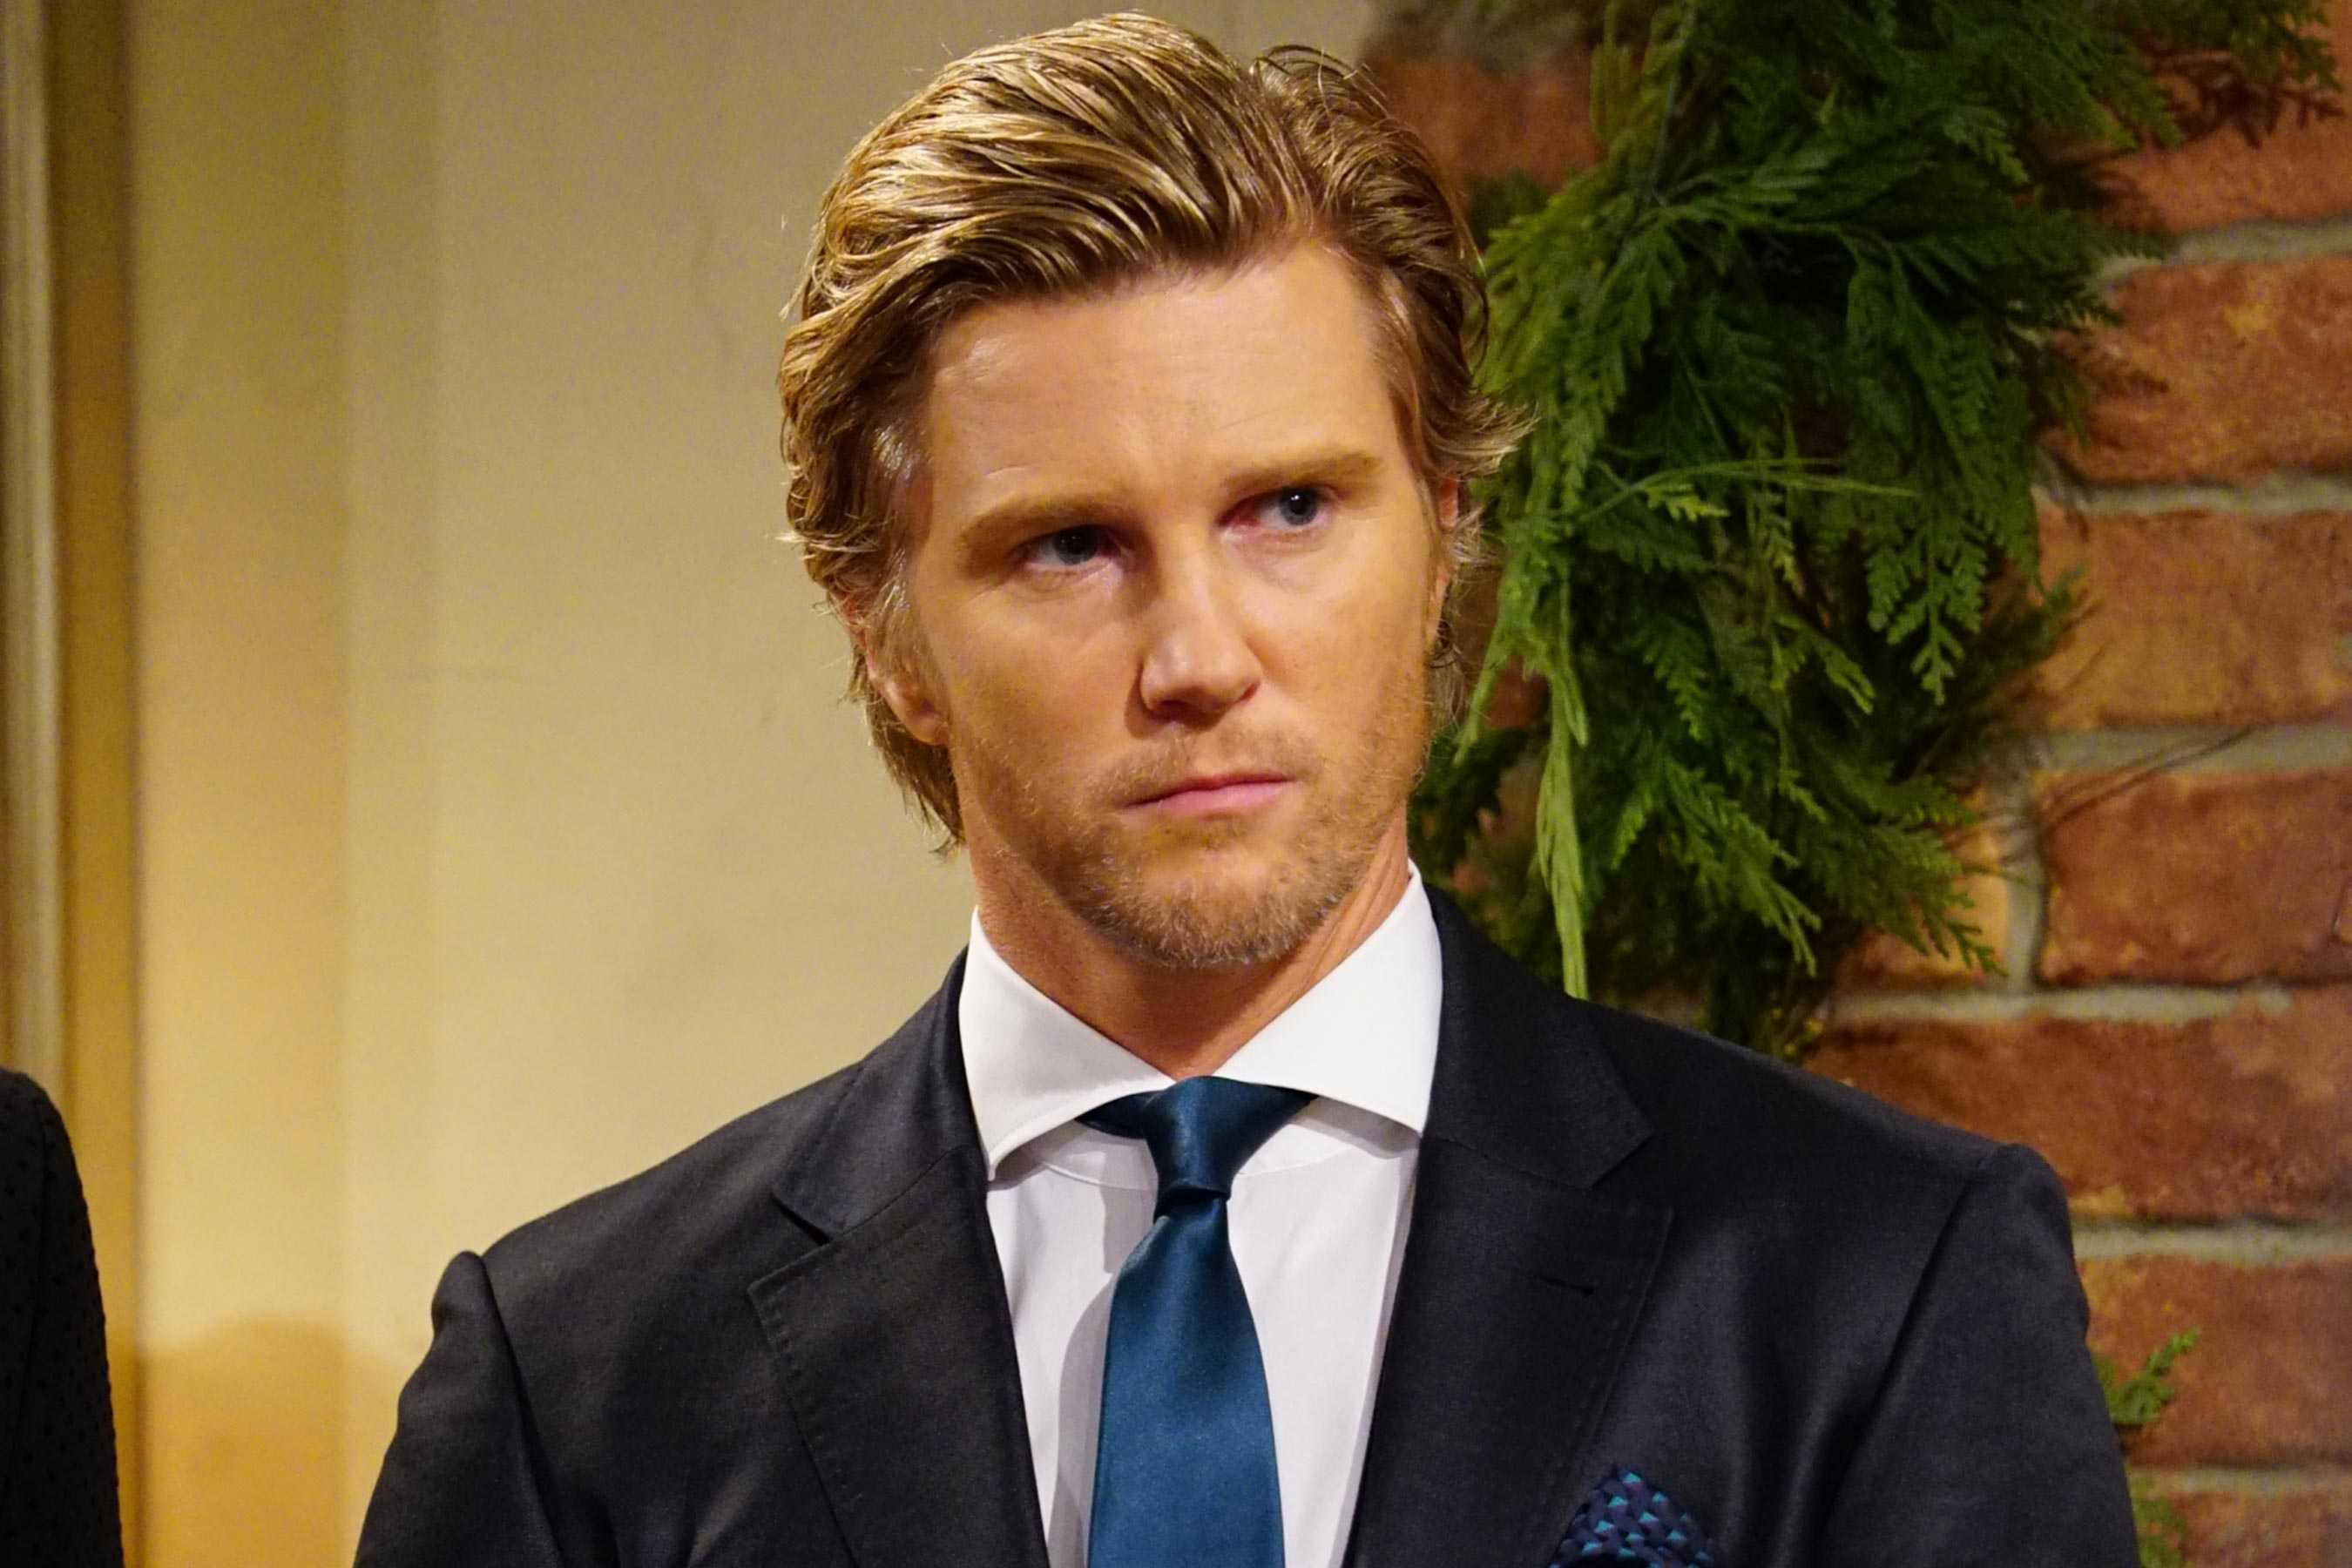 The Young and the Restless Update: Where is JT's body?